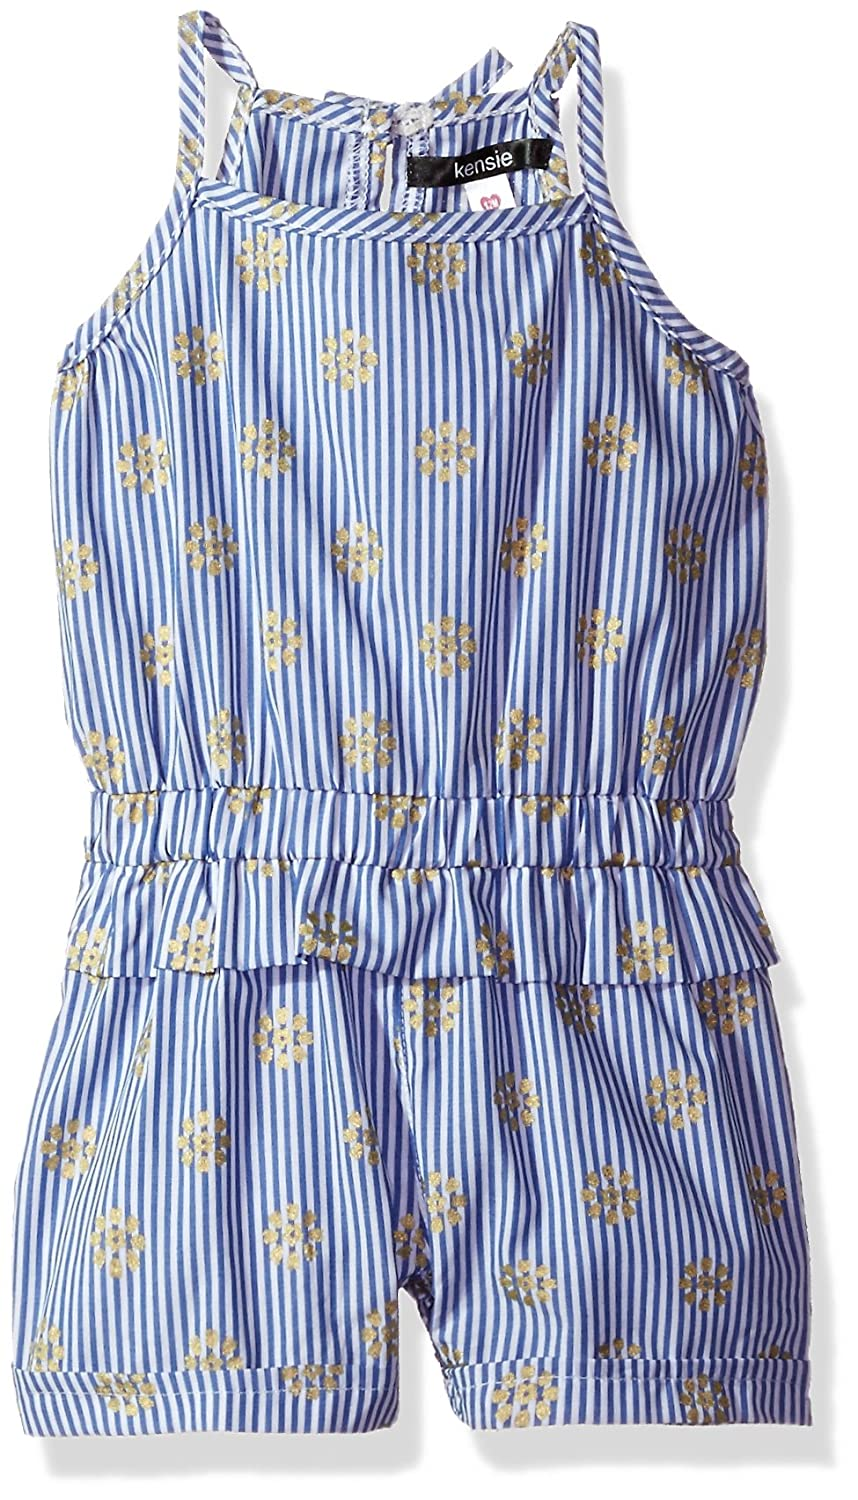 611ce4d99001 Amazon.com  kensie Baby Girls  Foil Flowers and Stripes Poplin Romper   Clothing